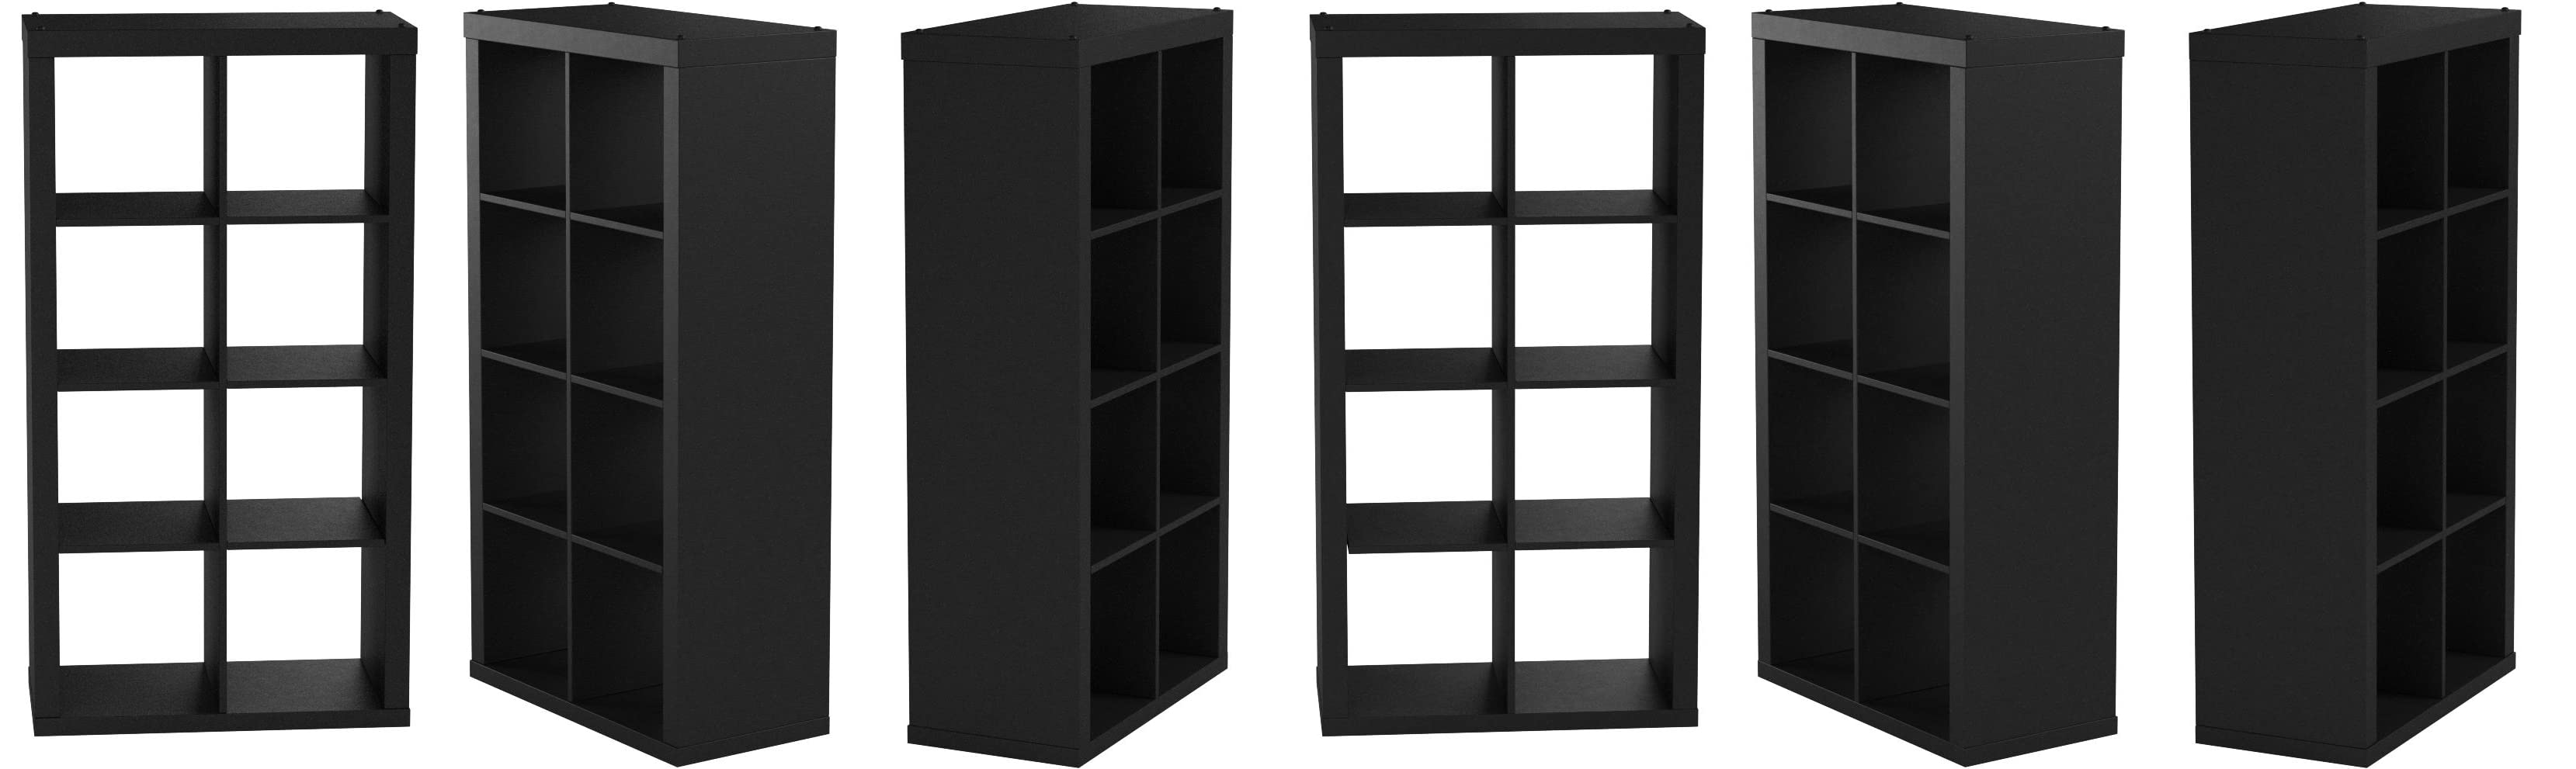 Better Homes and Gardens 8-Cube Organizer and Microfiber Cleaning Cloth Bundle Black